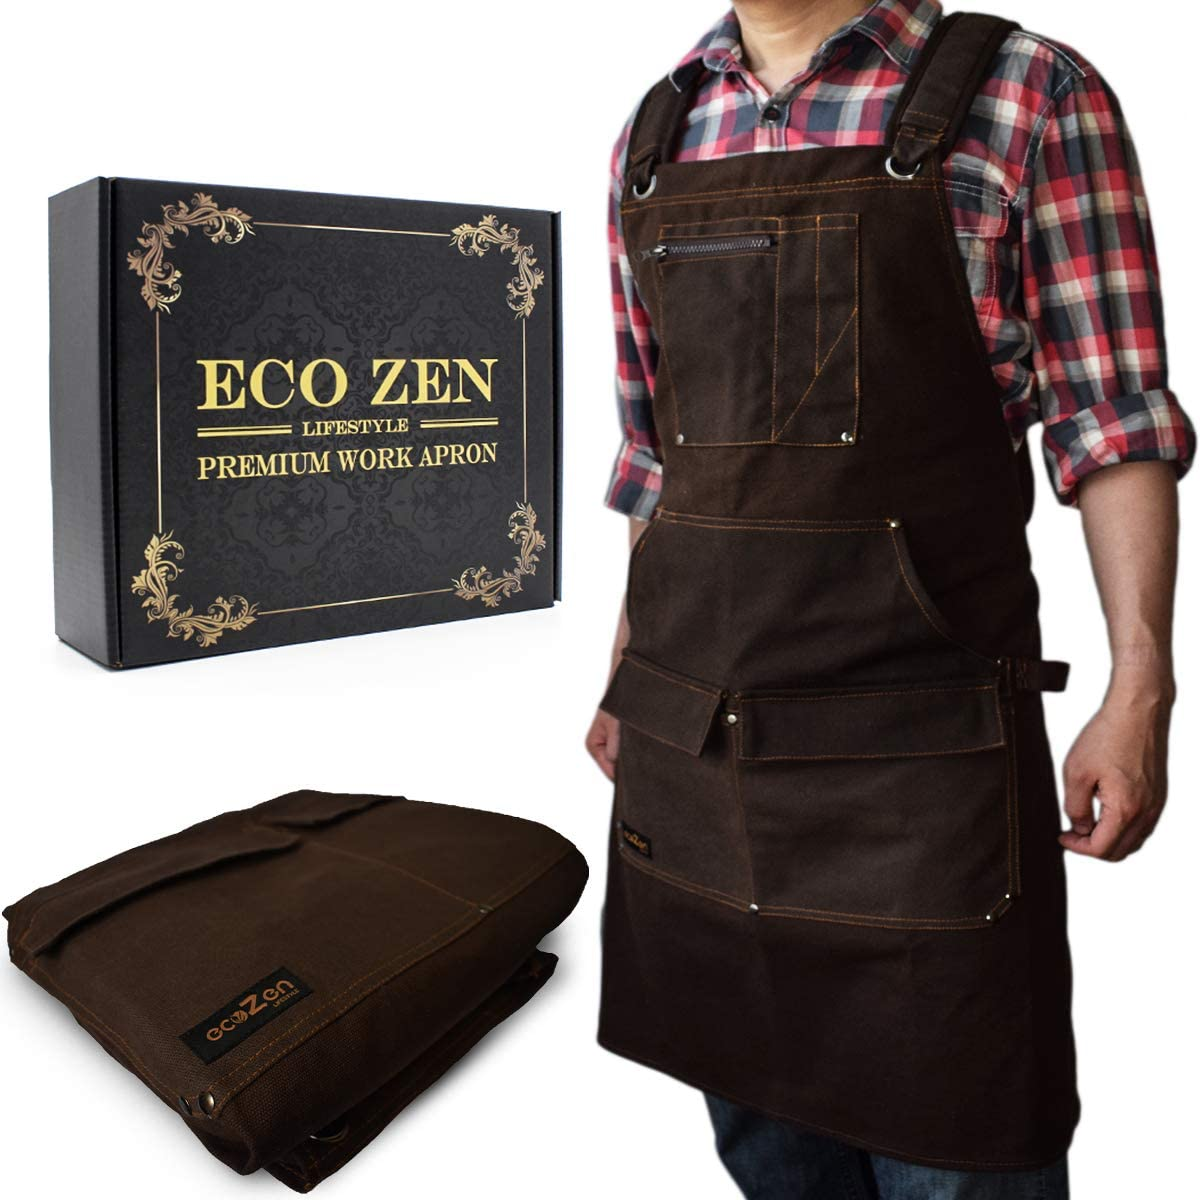 Woodworking Shop Apron - 16 oz Waxed Canvas Work Aprons | Metal Tape holder, Fully Adjustable to Comfortably Fit Men and Women Size S to XXL | Tough Tool Apron to Give Protection and Last a Lifetime - -